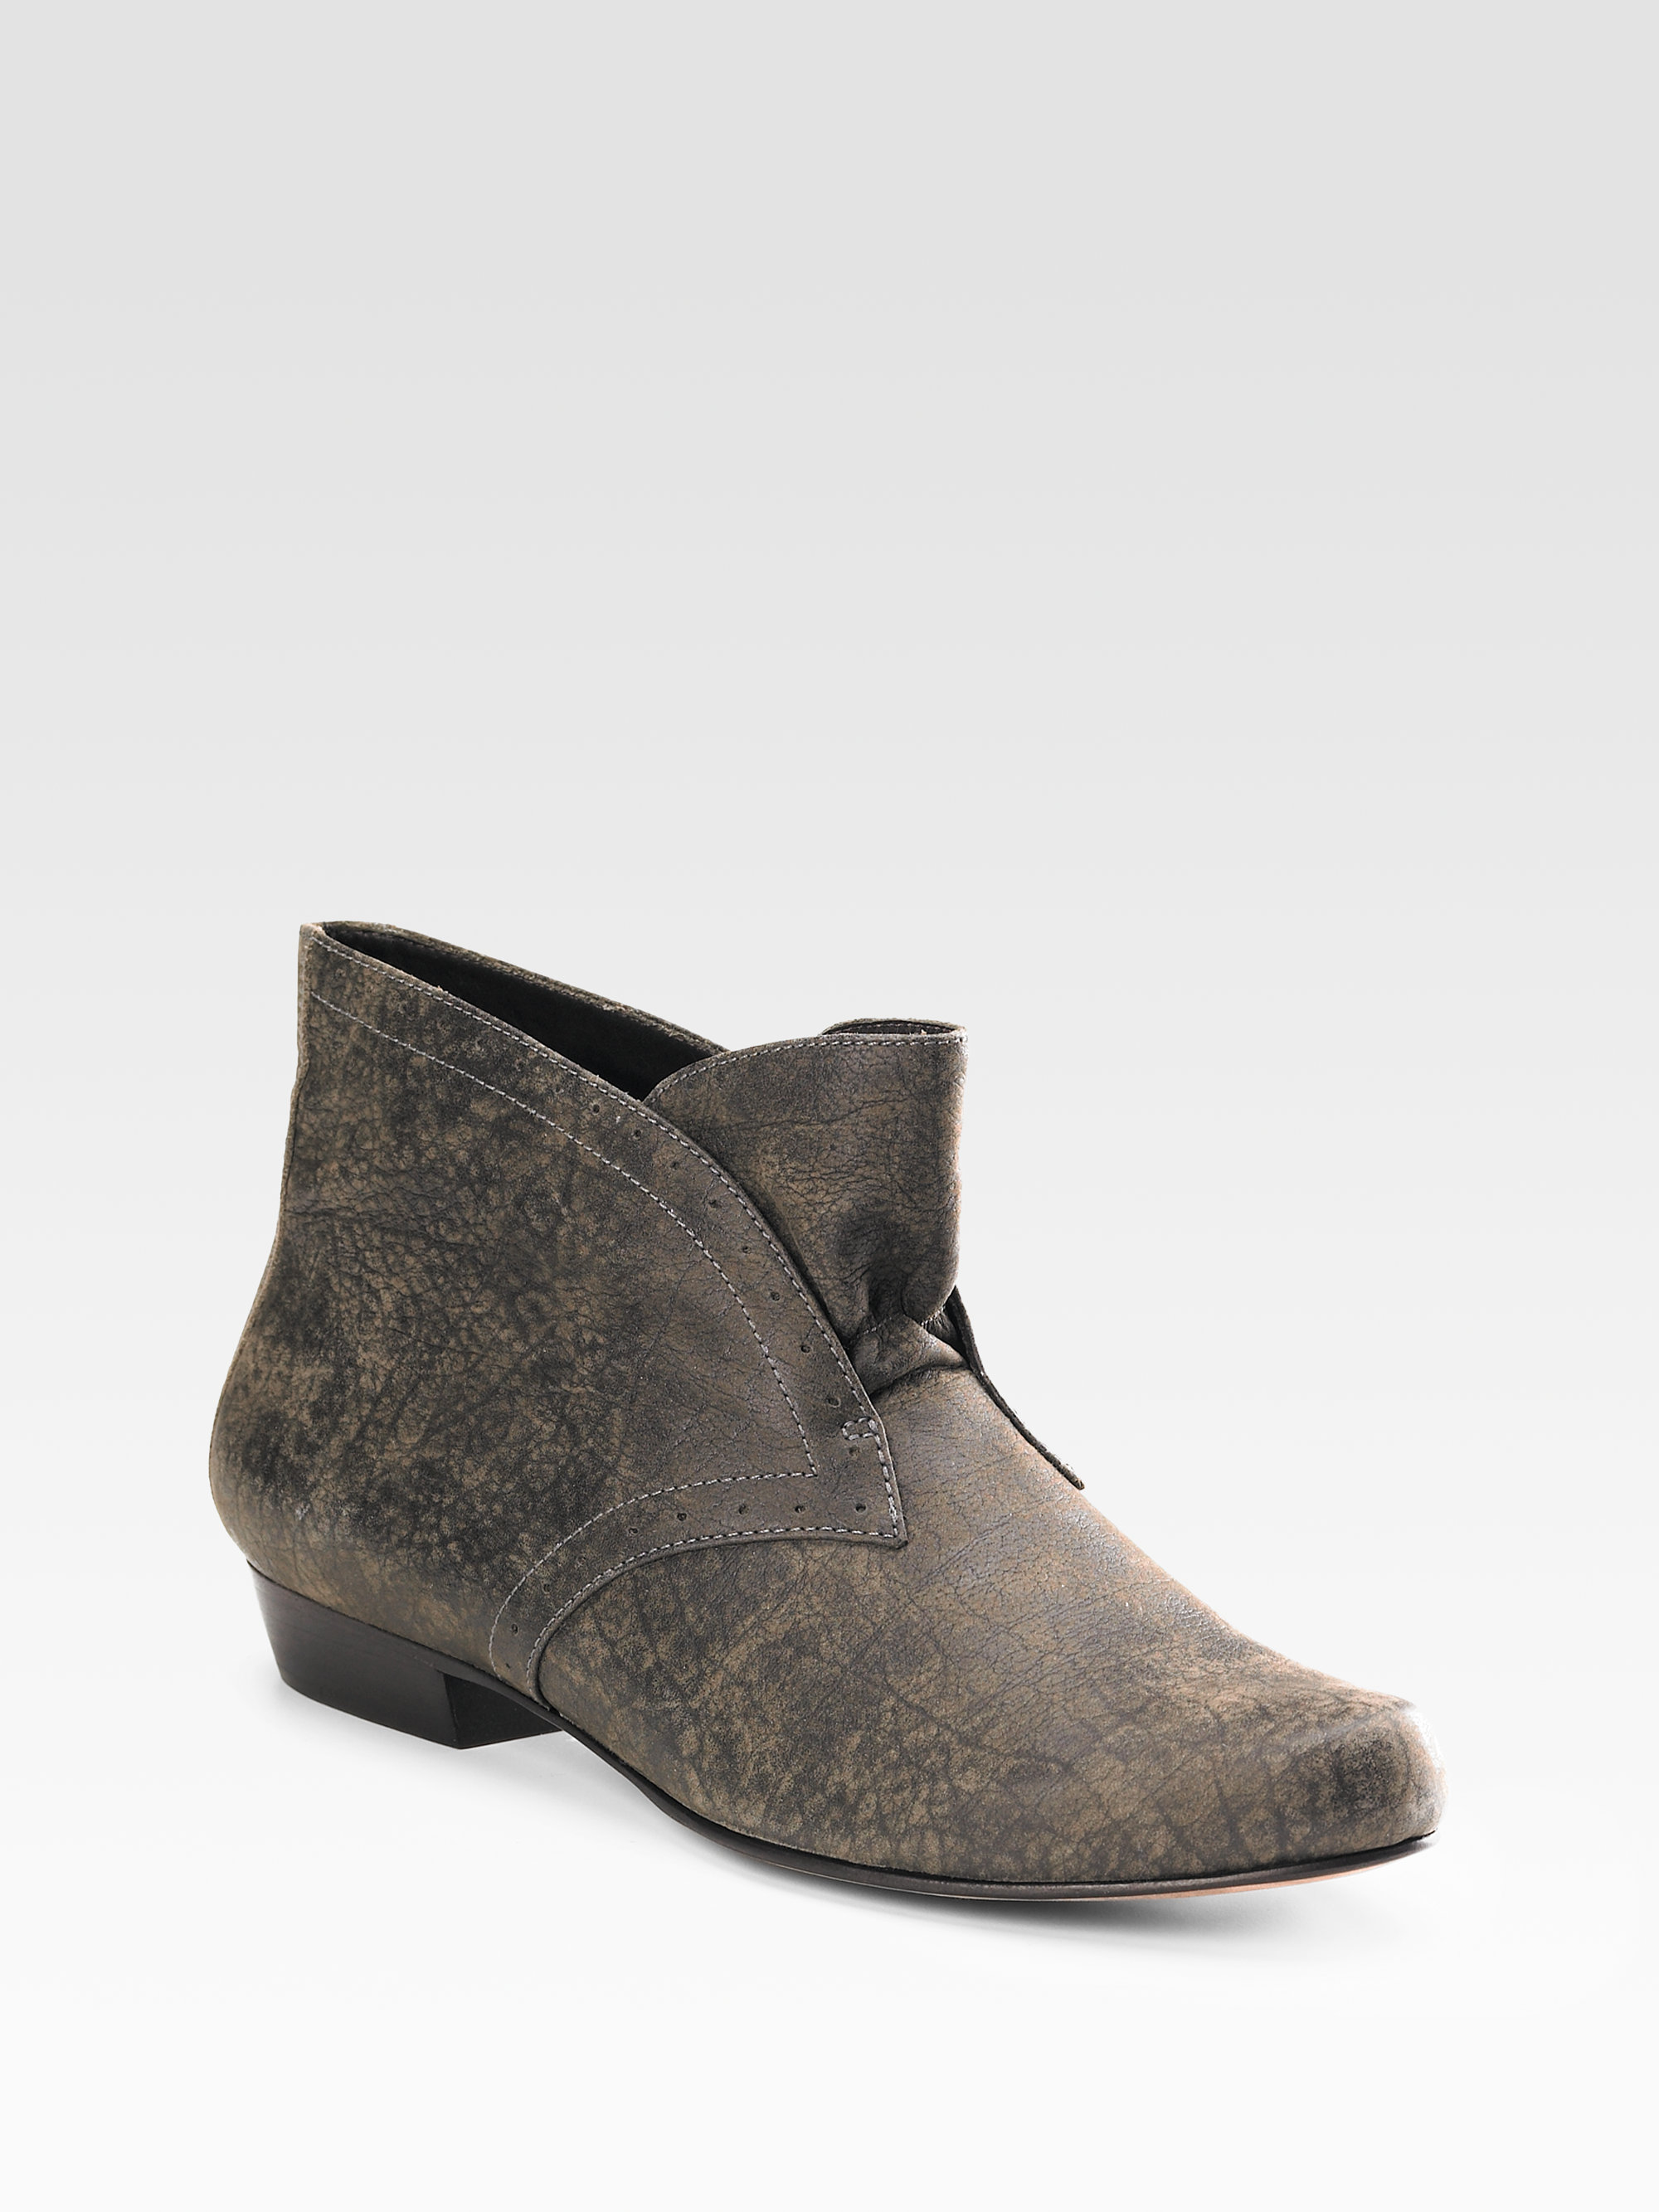 Elizabeth and james Distressed Leather Ankle Boots in Gray | Lyst